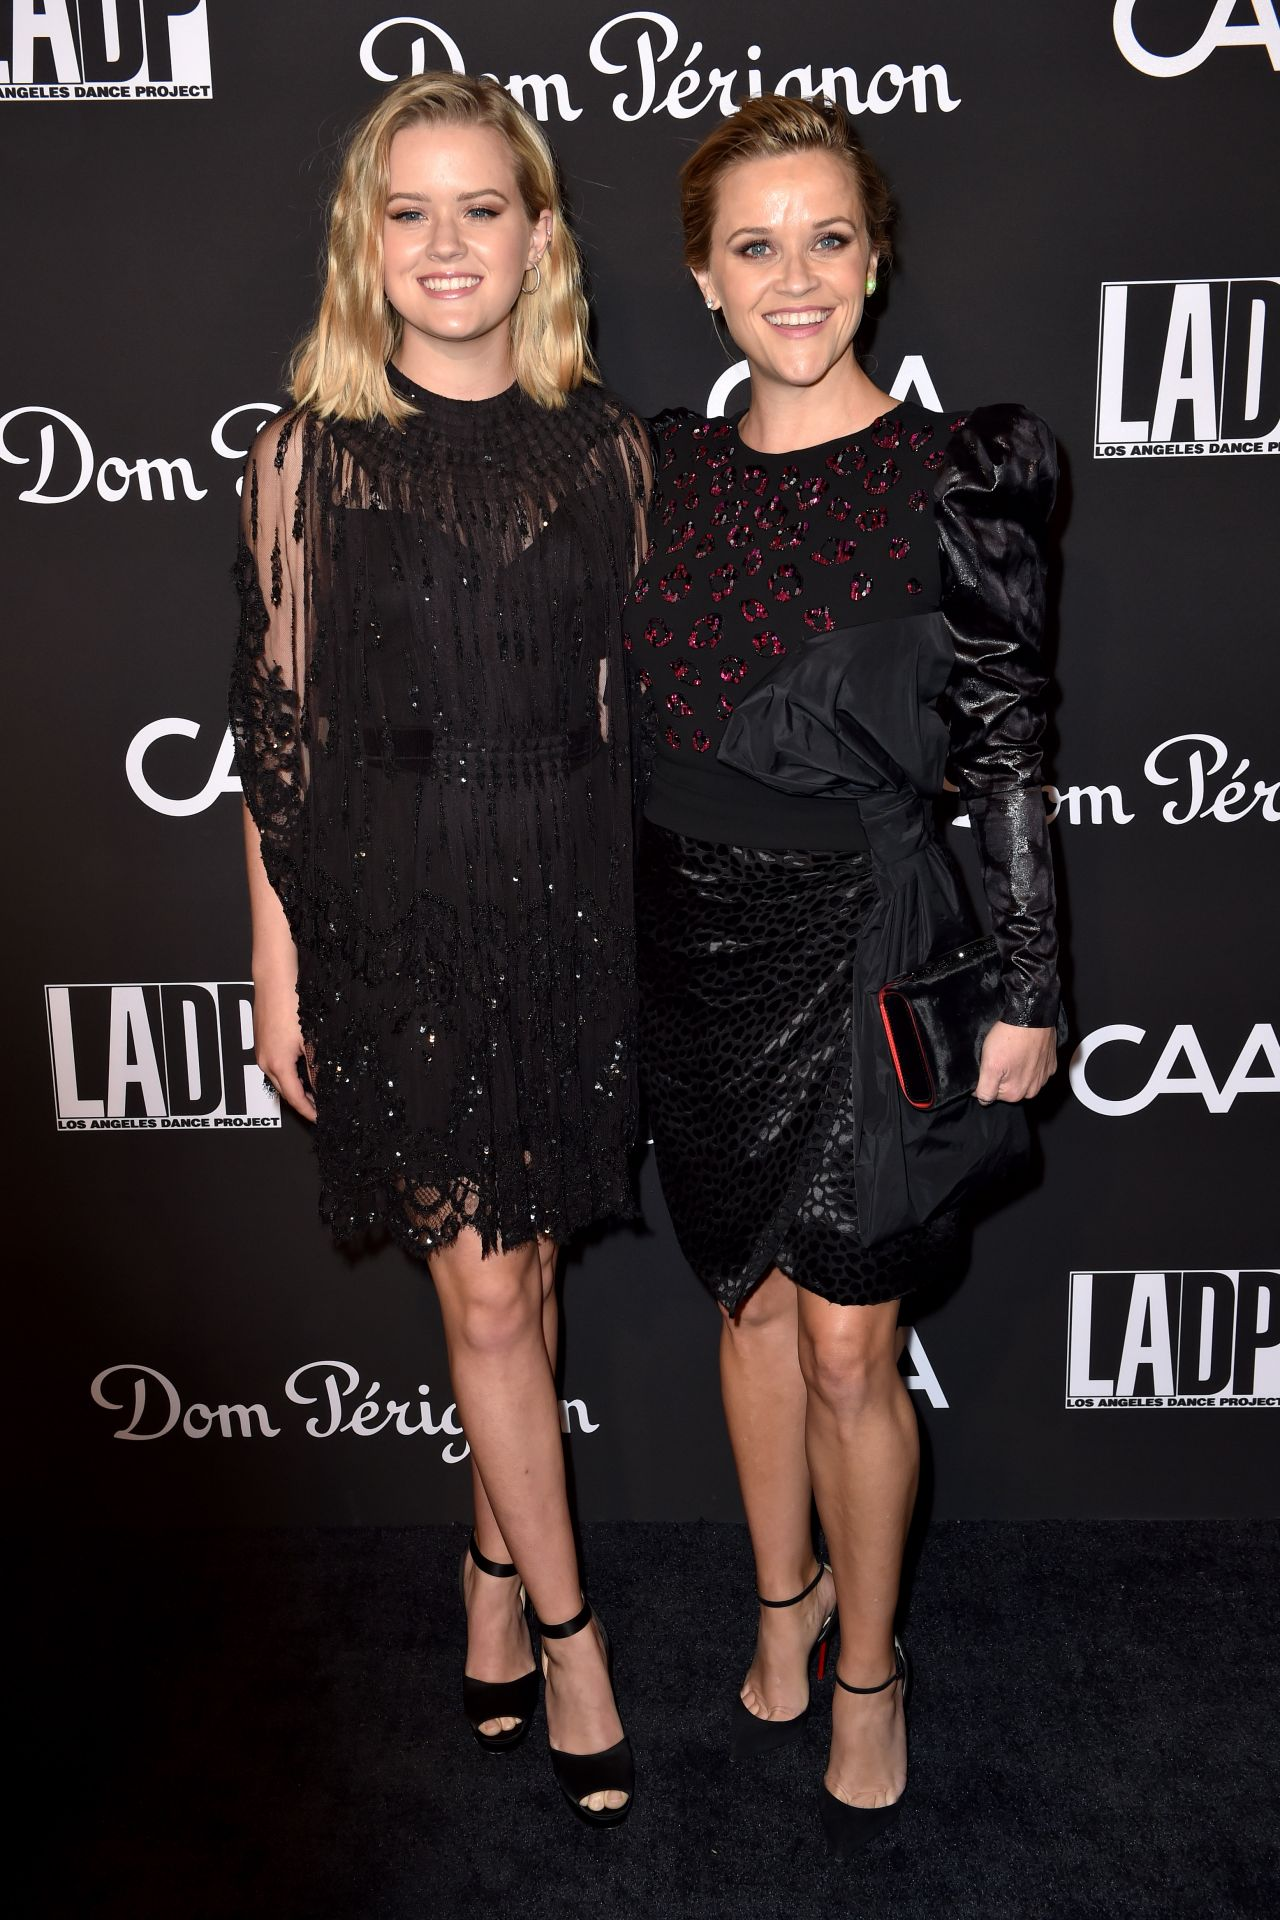 https://celebmafia.com/wp-content/uploads/2018/10/reese-witherspoon-ladp-dance-project-gala-2018-4.jpg